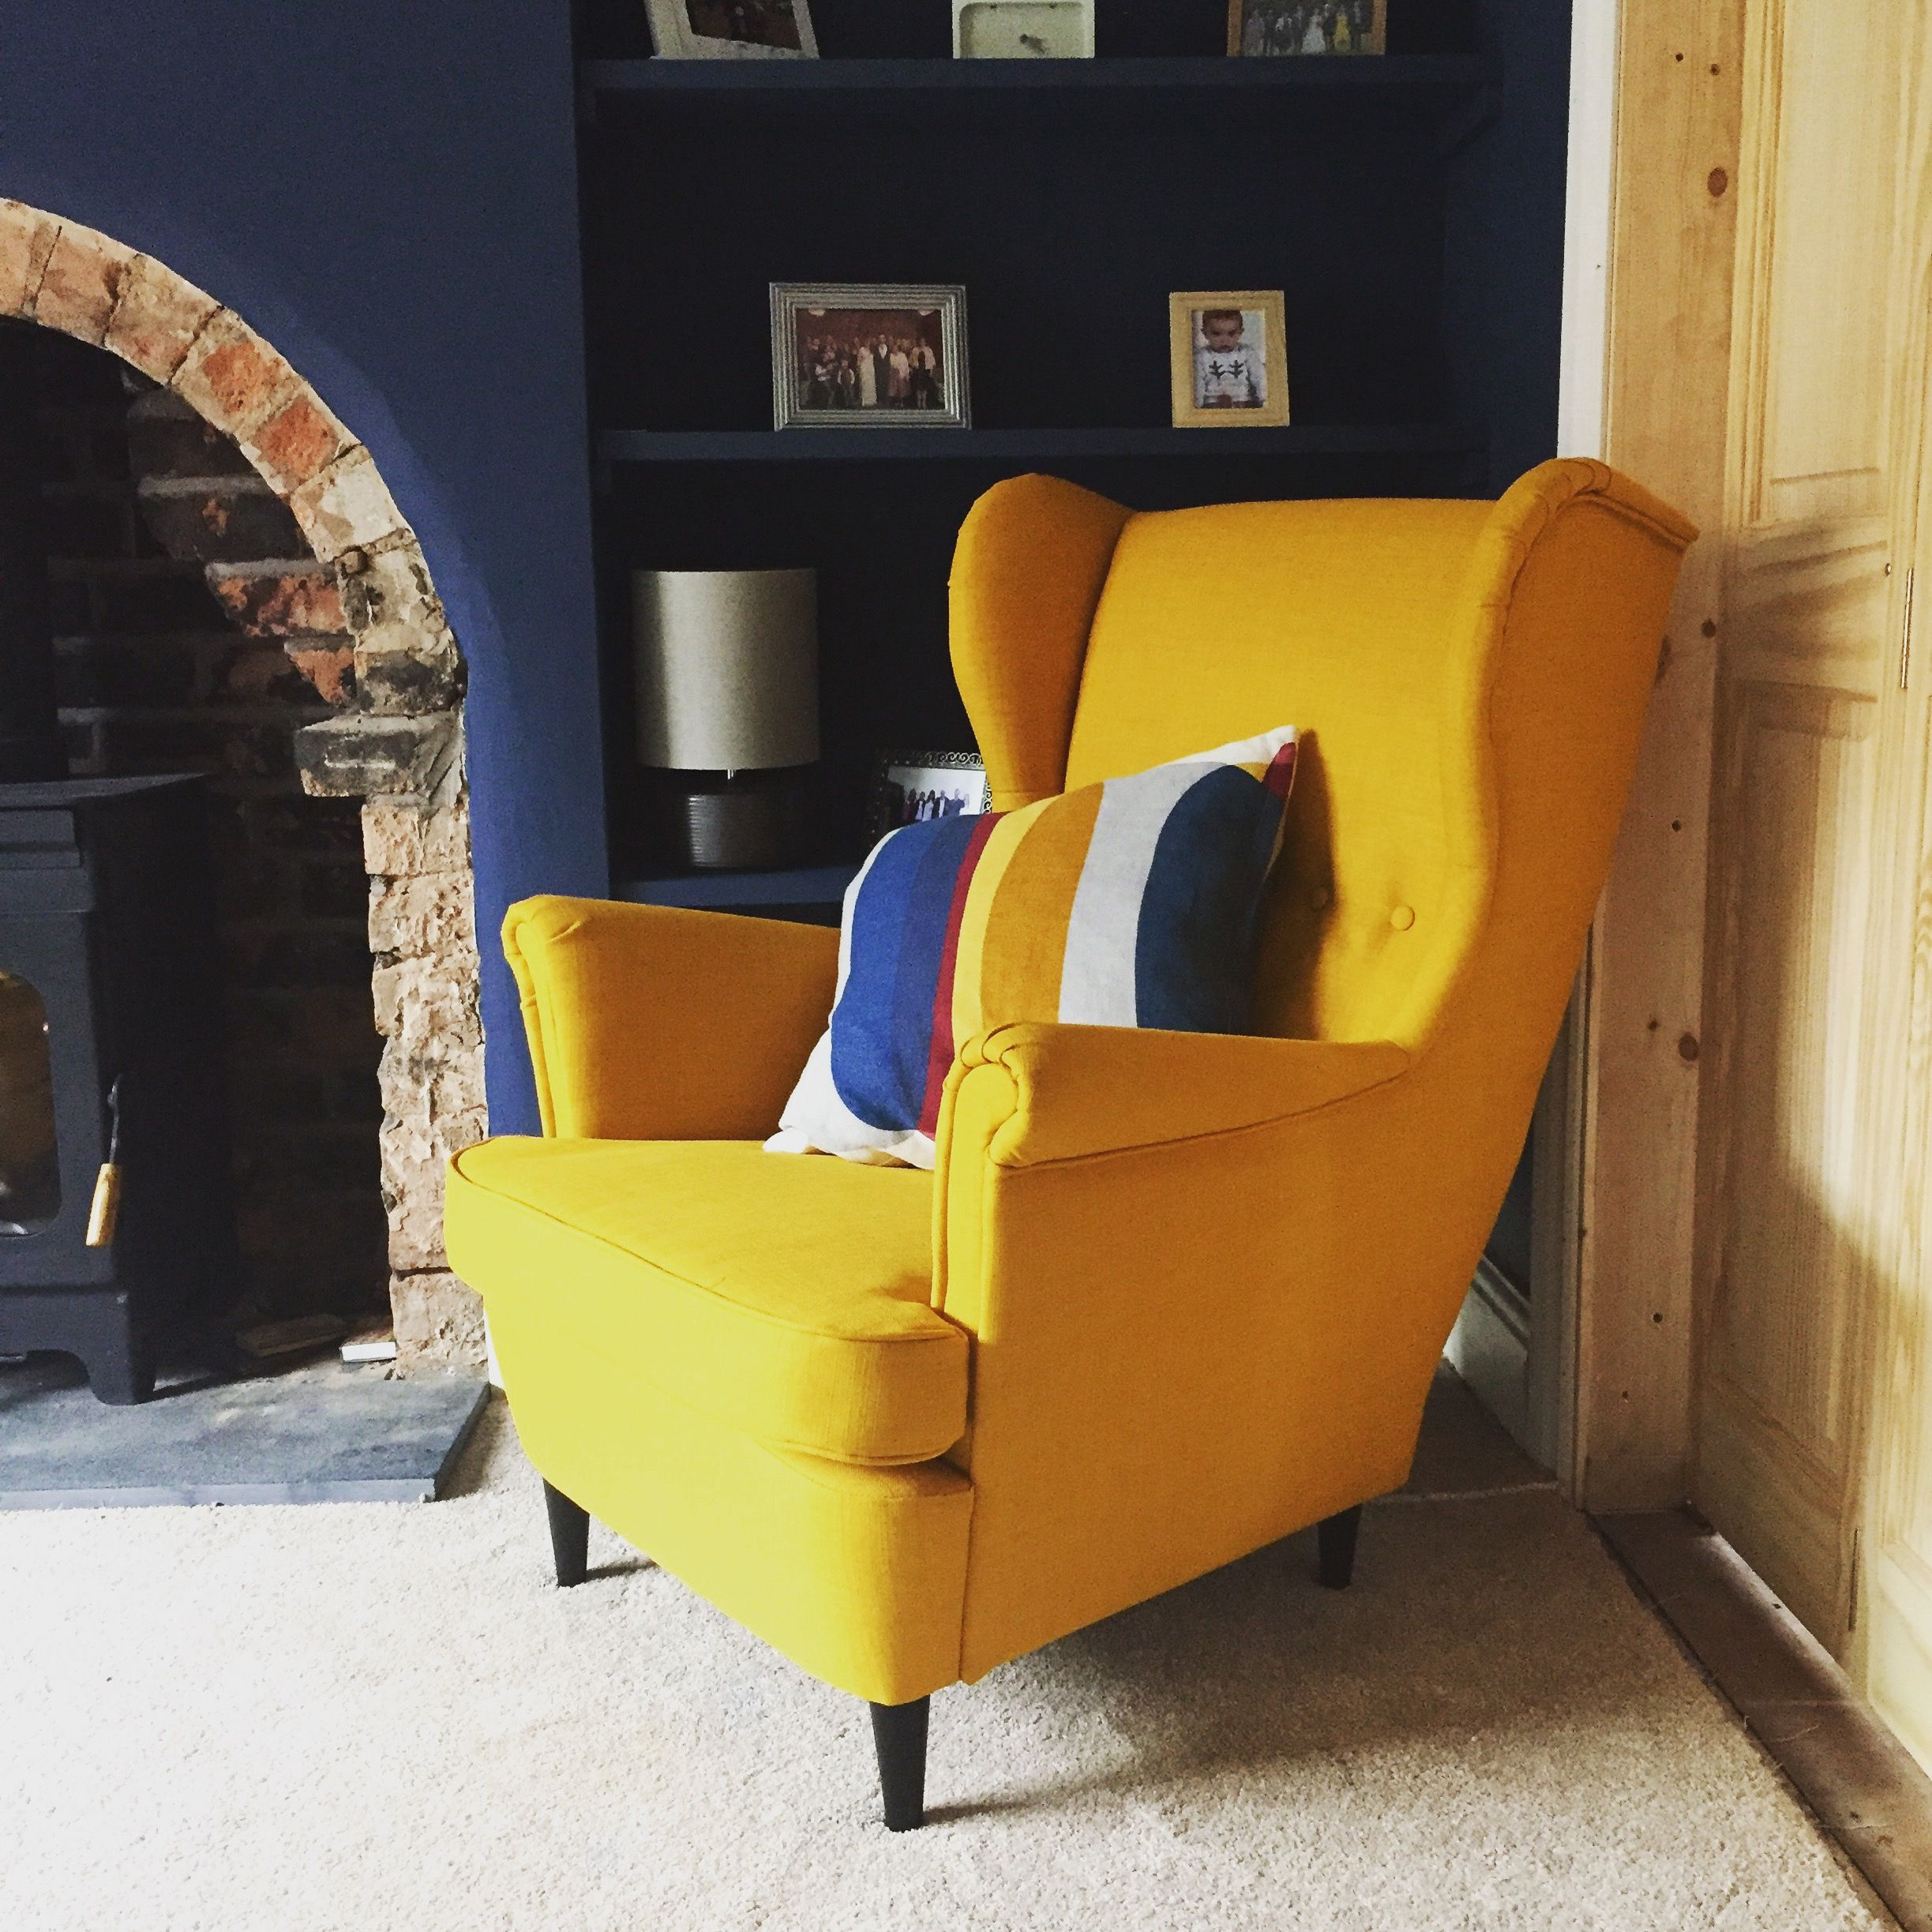 Yellow Wheelchair Comfy Deck Chairs Lounge Coming Along Nicely Dulux Breton Blue And Ikea